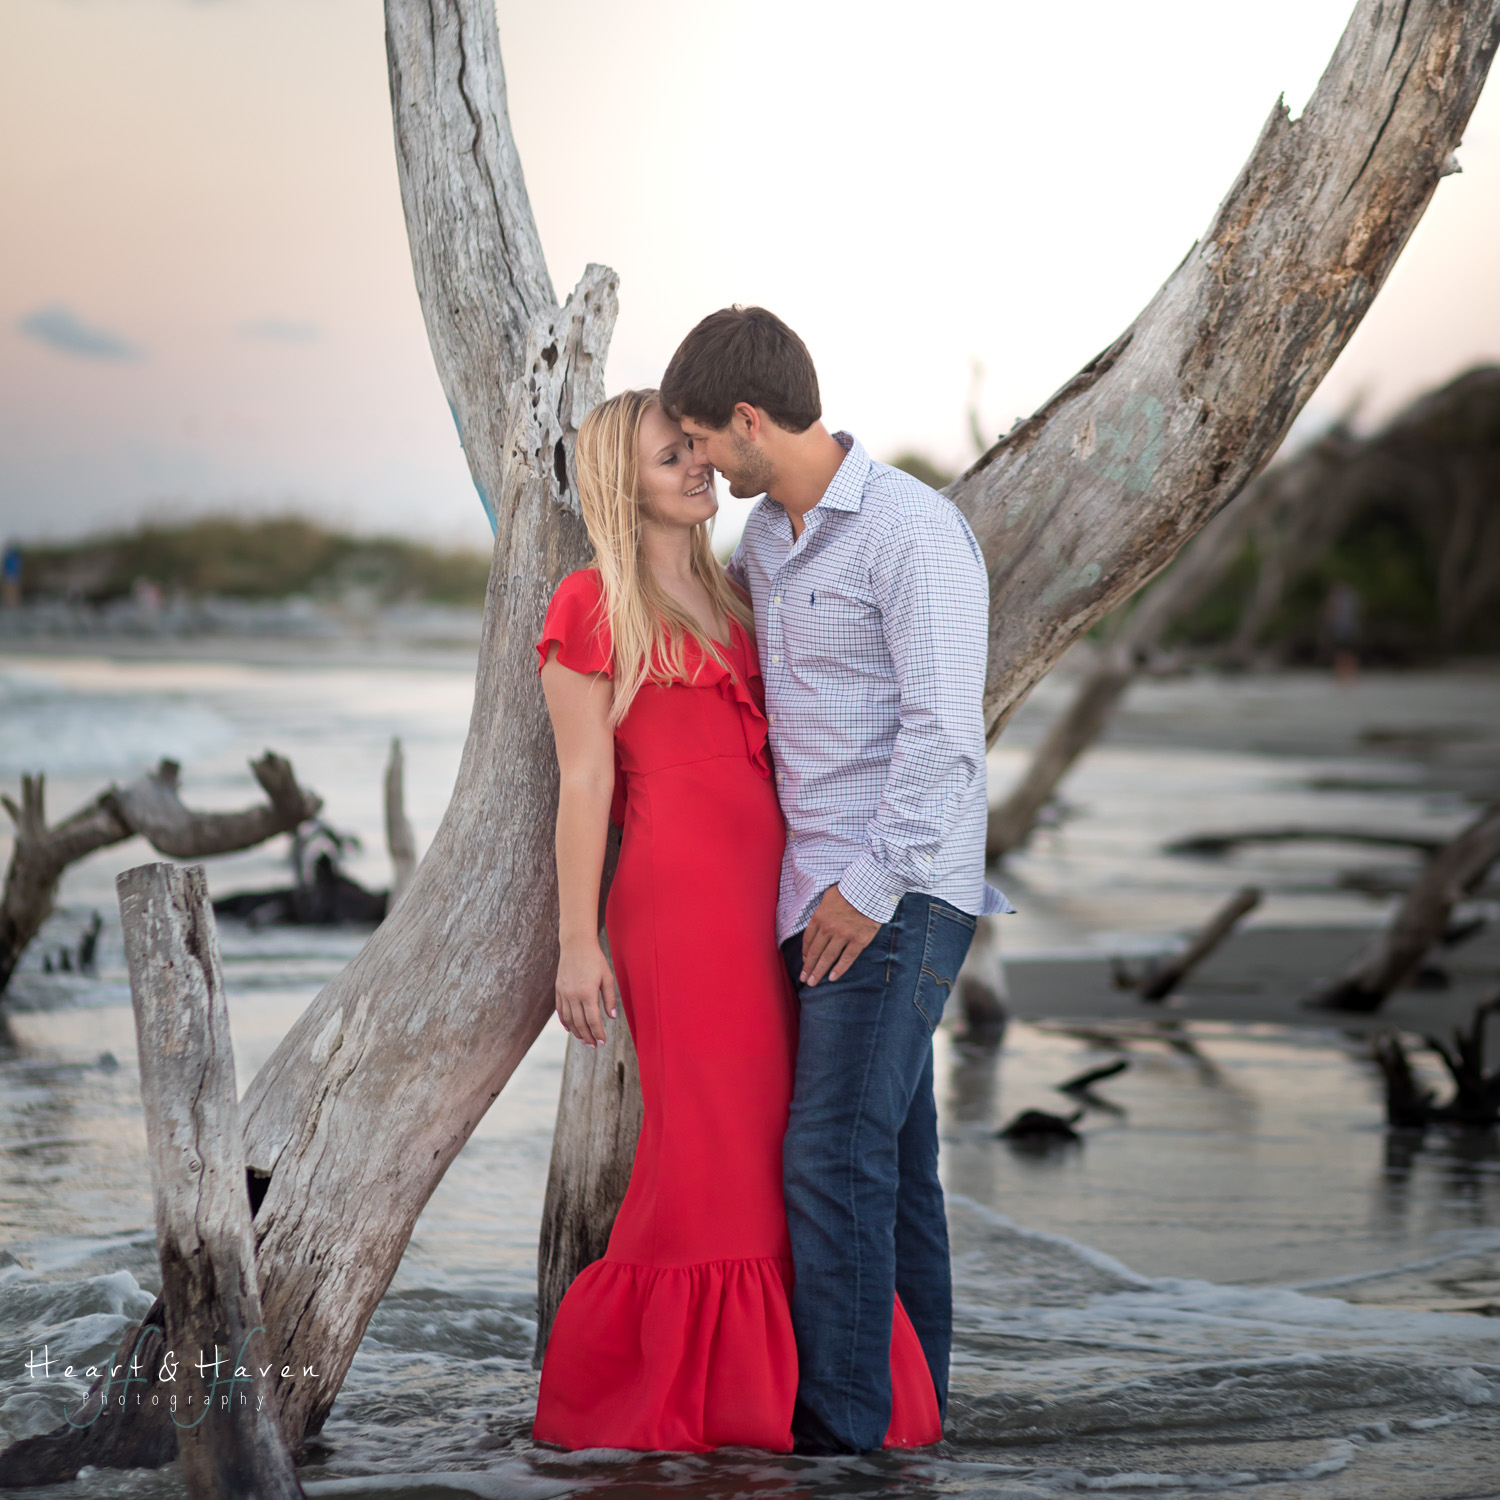 Engagement Photography_Couples Photography-7.jpg